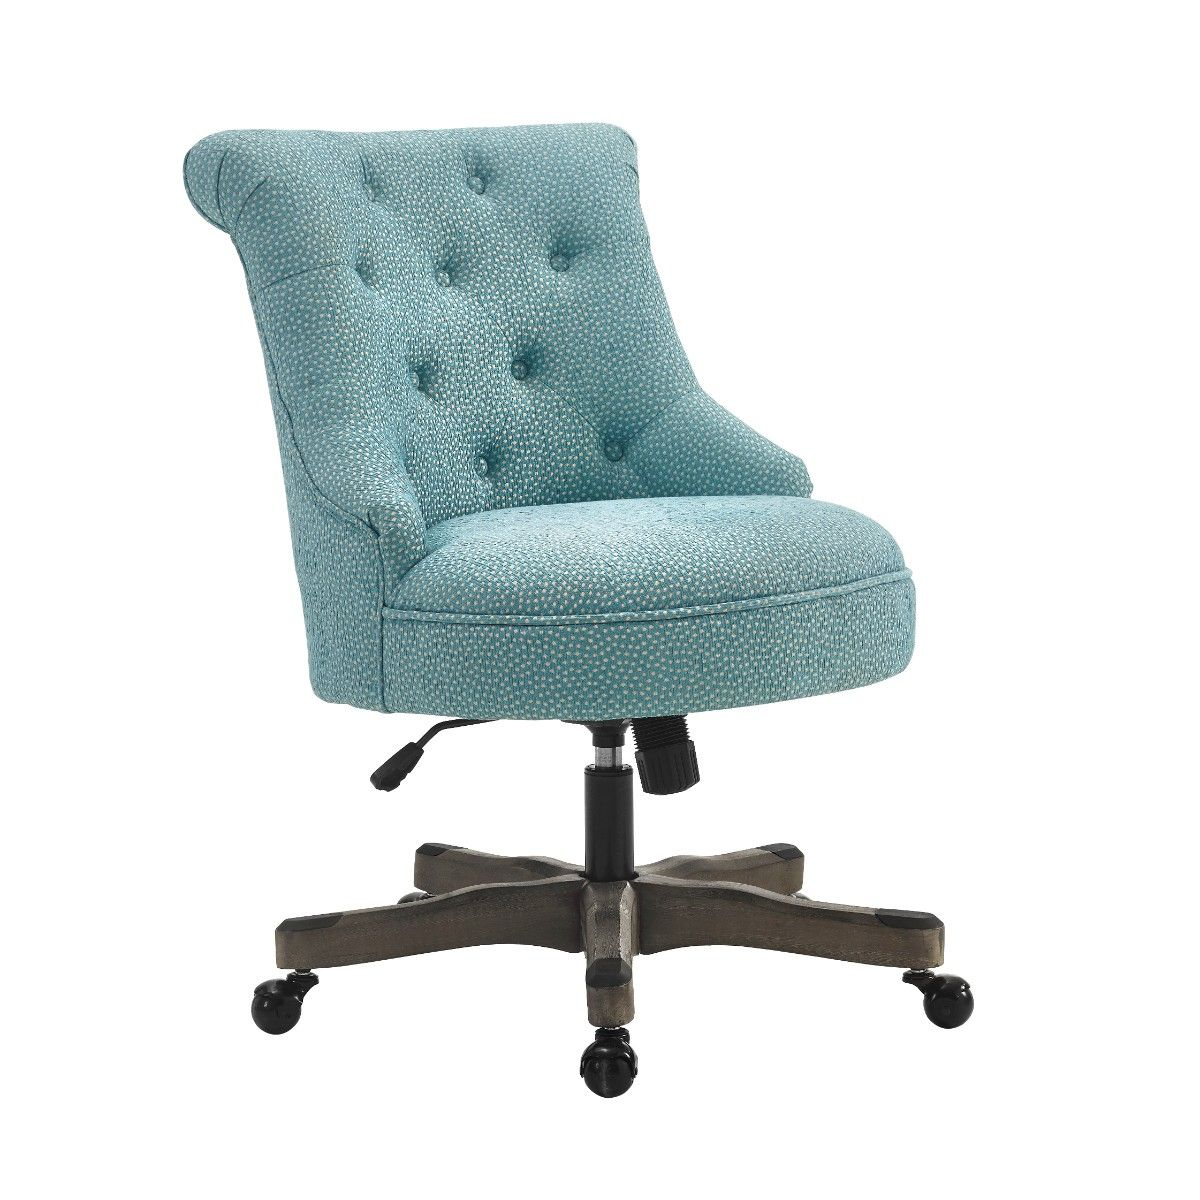 Sinclair Office Chair in Light Blue w/ Gray Wash Wood Base